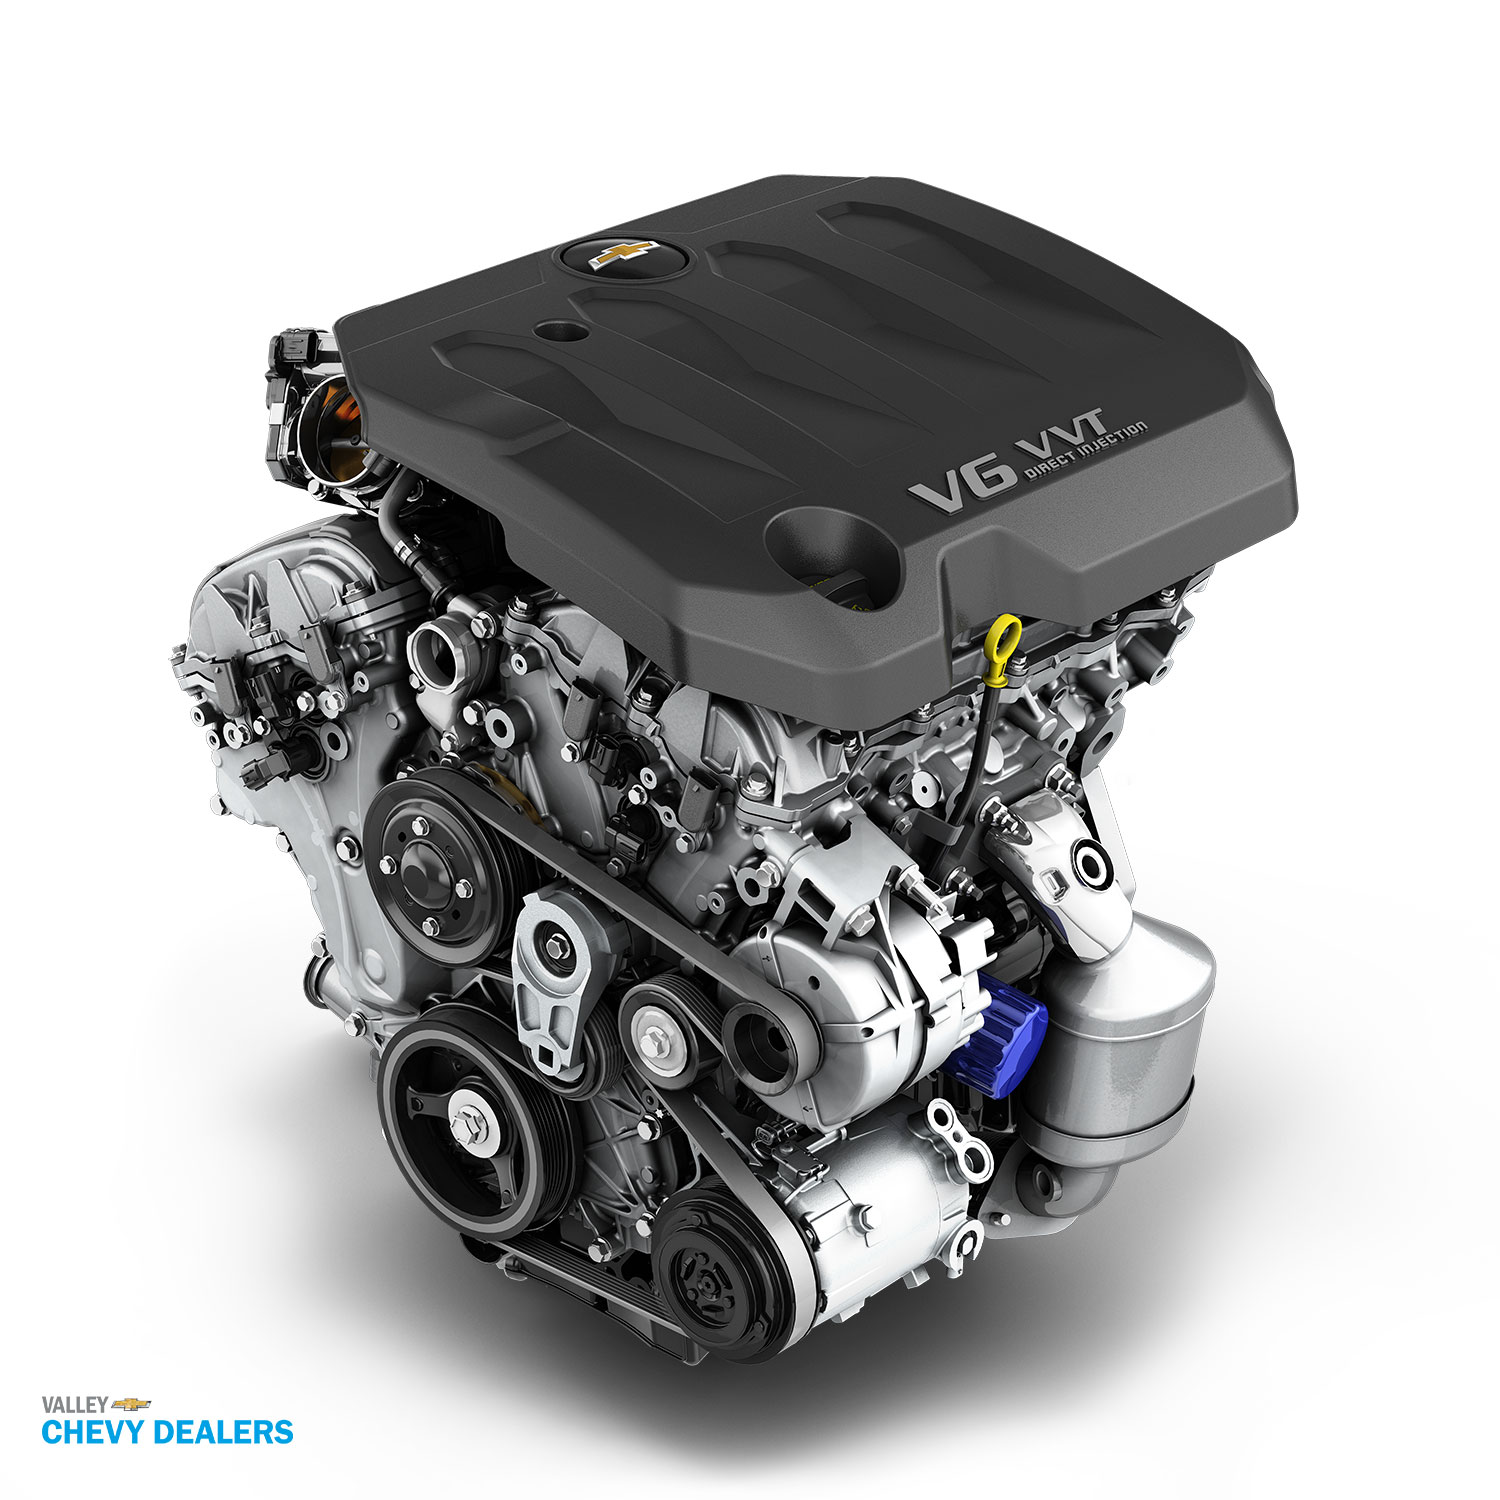 2017 Chevrolet Impala Engine Options  IKW  LFX Horsepower